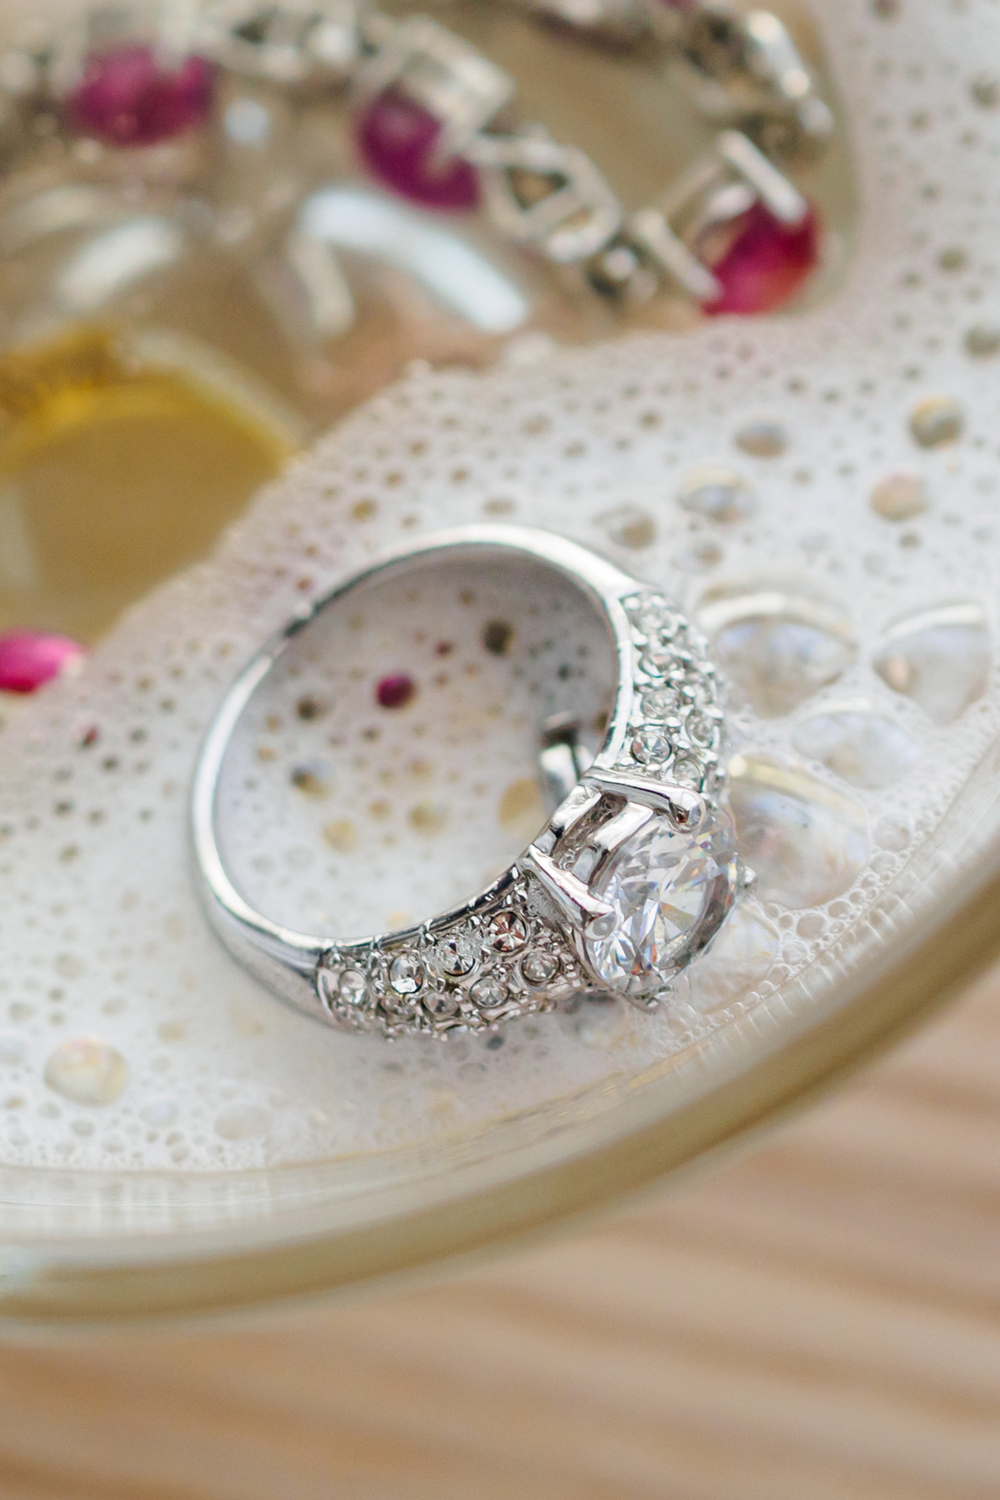 Problems with Cleaning Silver-Plated Items